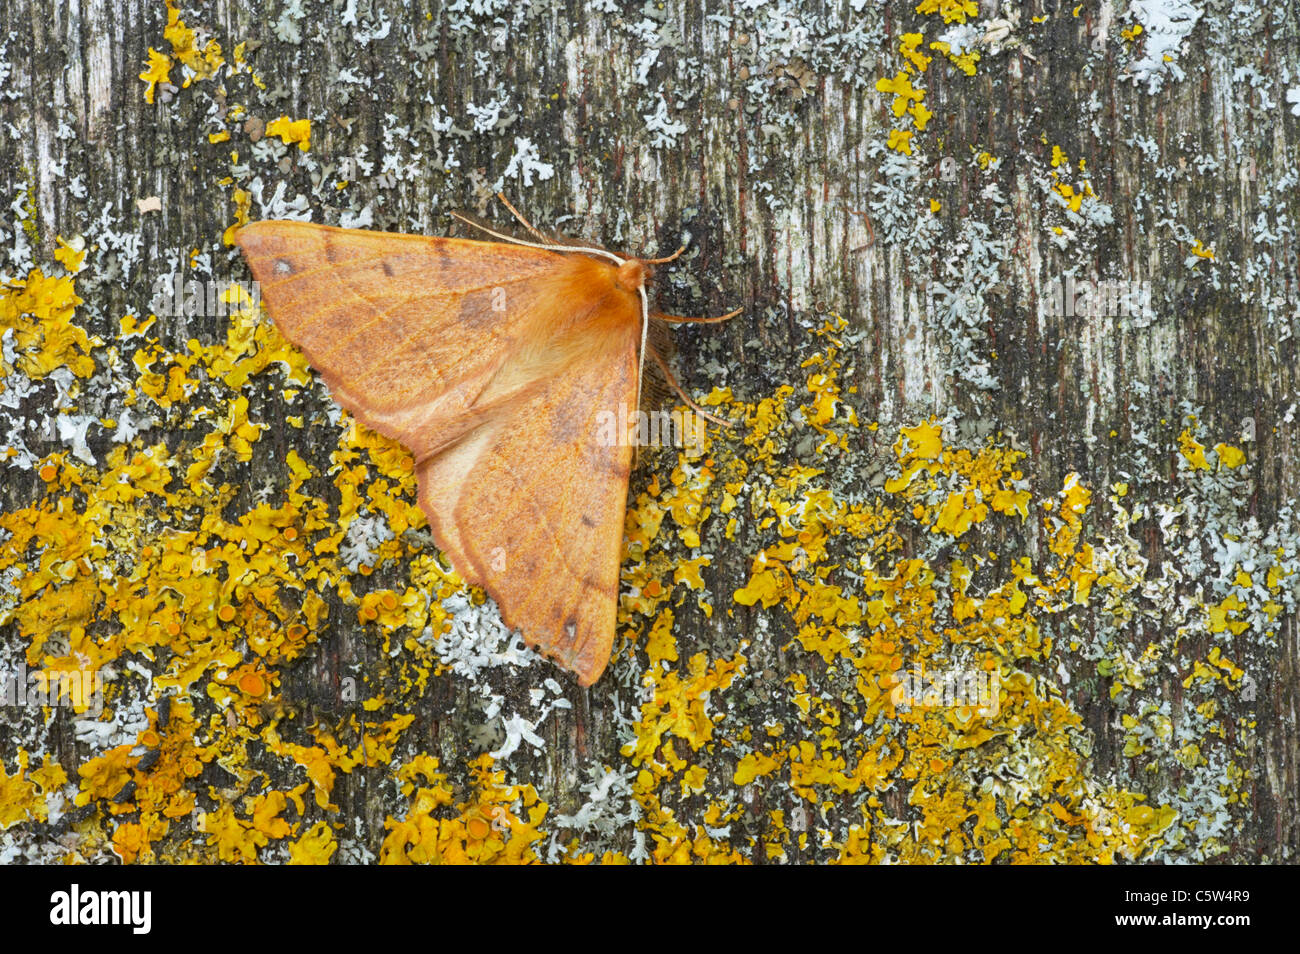 Feathered Thorn Colotois pennaria Essex, UK IN000602 - Stock Image